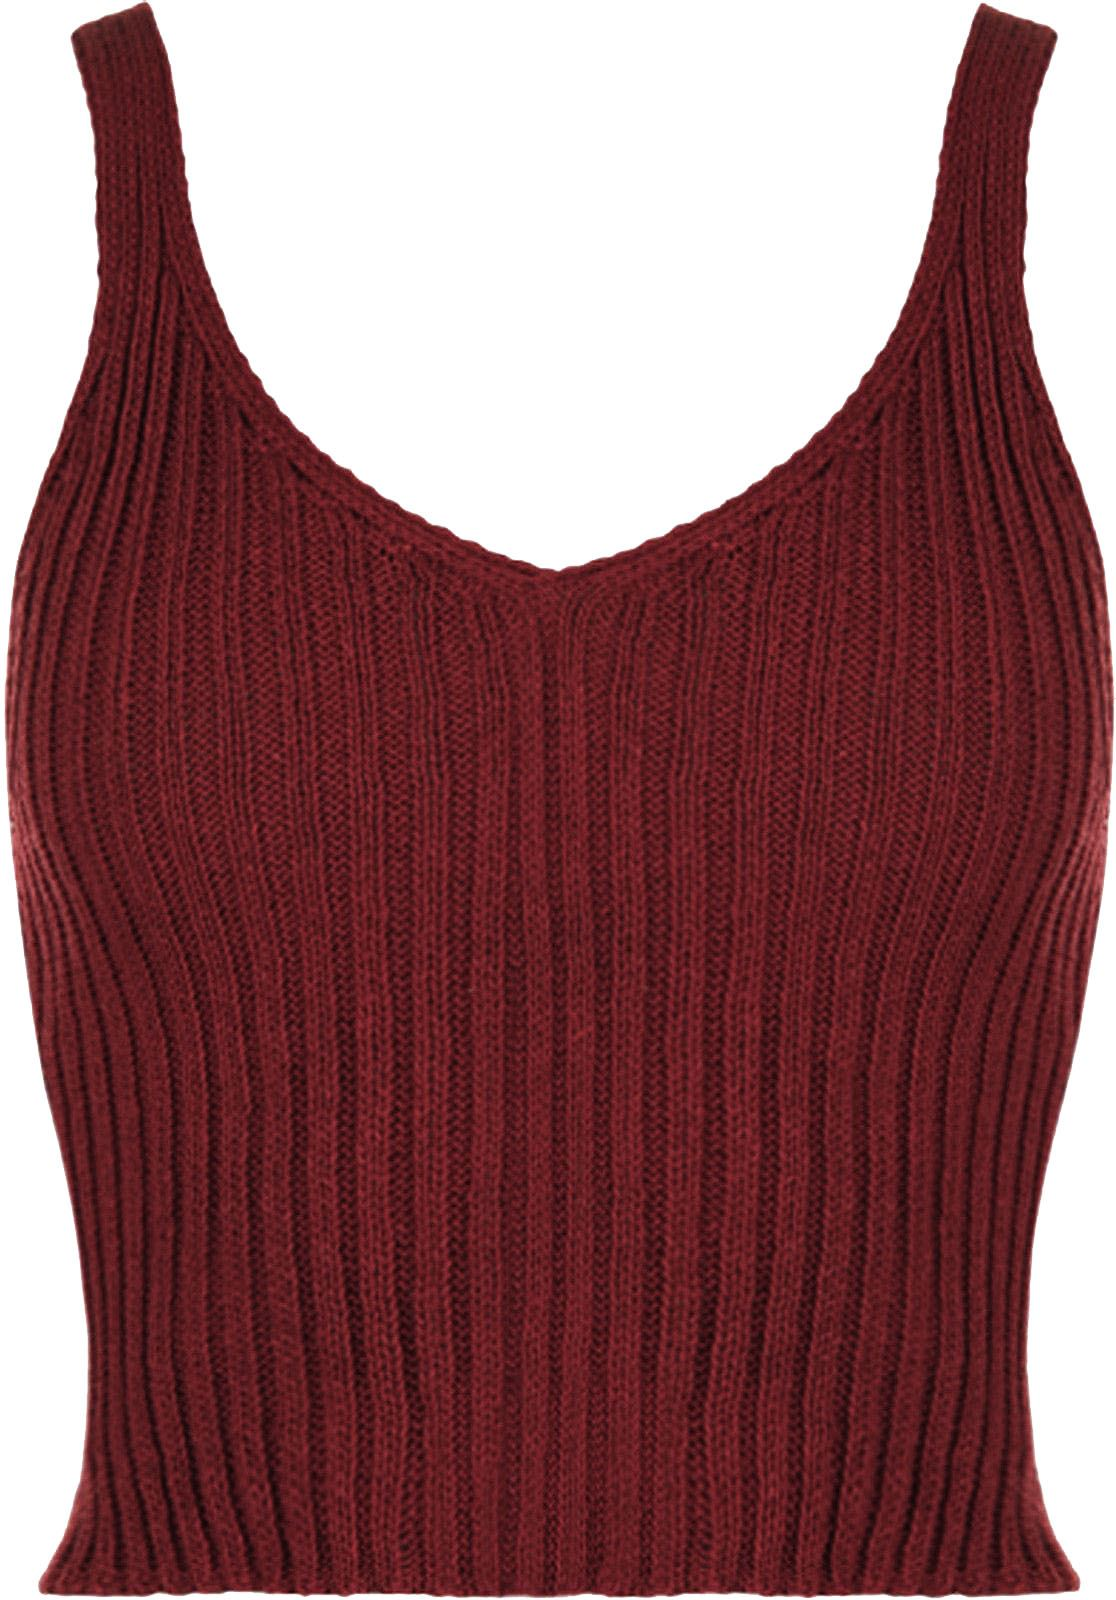 cddd56aa4ea42 New Women Ladies V Neck Knitted Ribbed Plain Bralet Crop Top Sleeveless  Vest Top